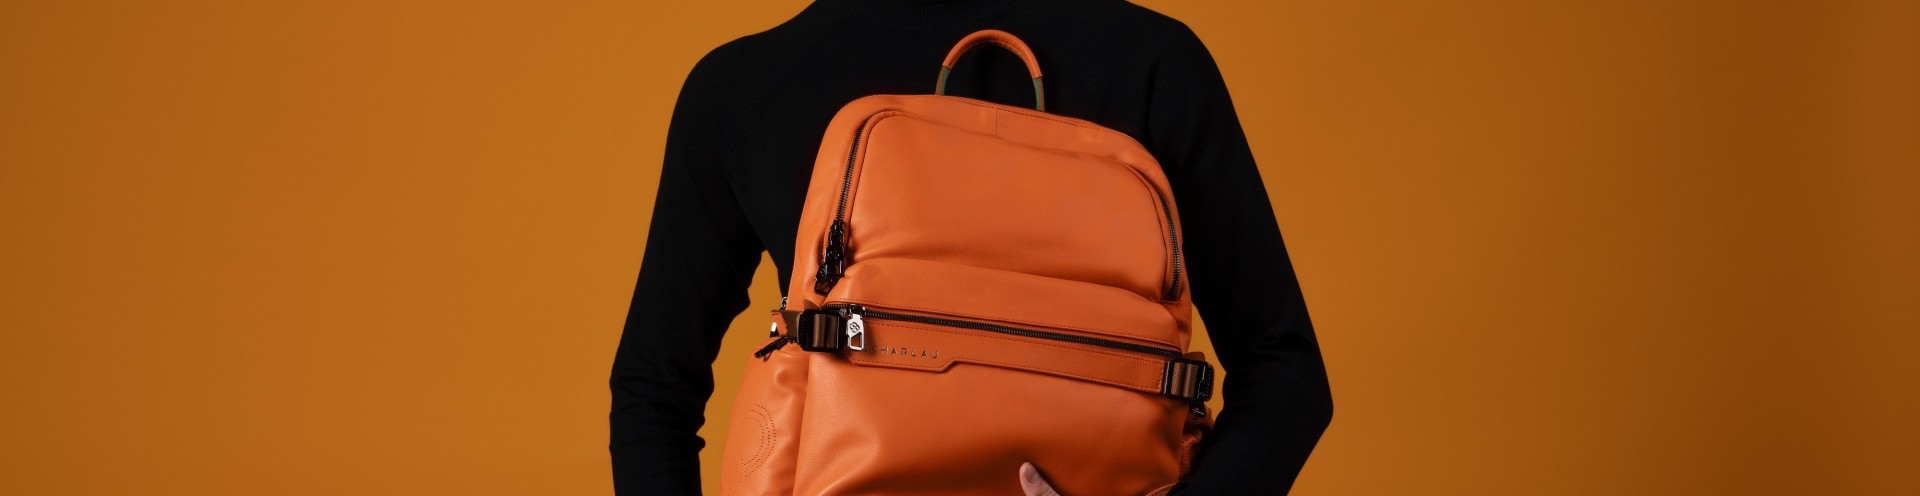 Customizable Leather Accessories for Business and Travel